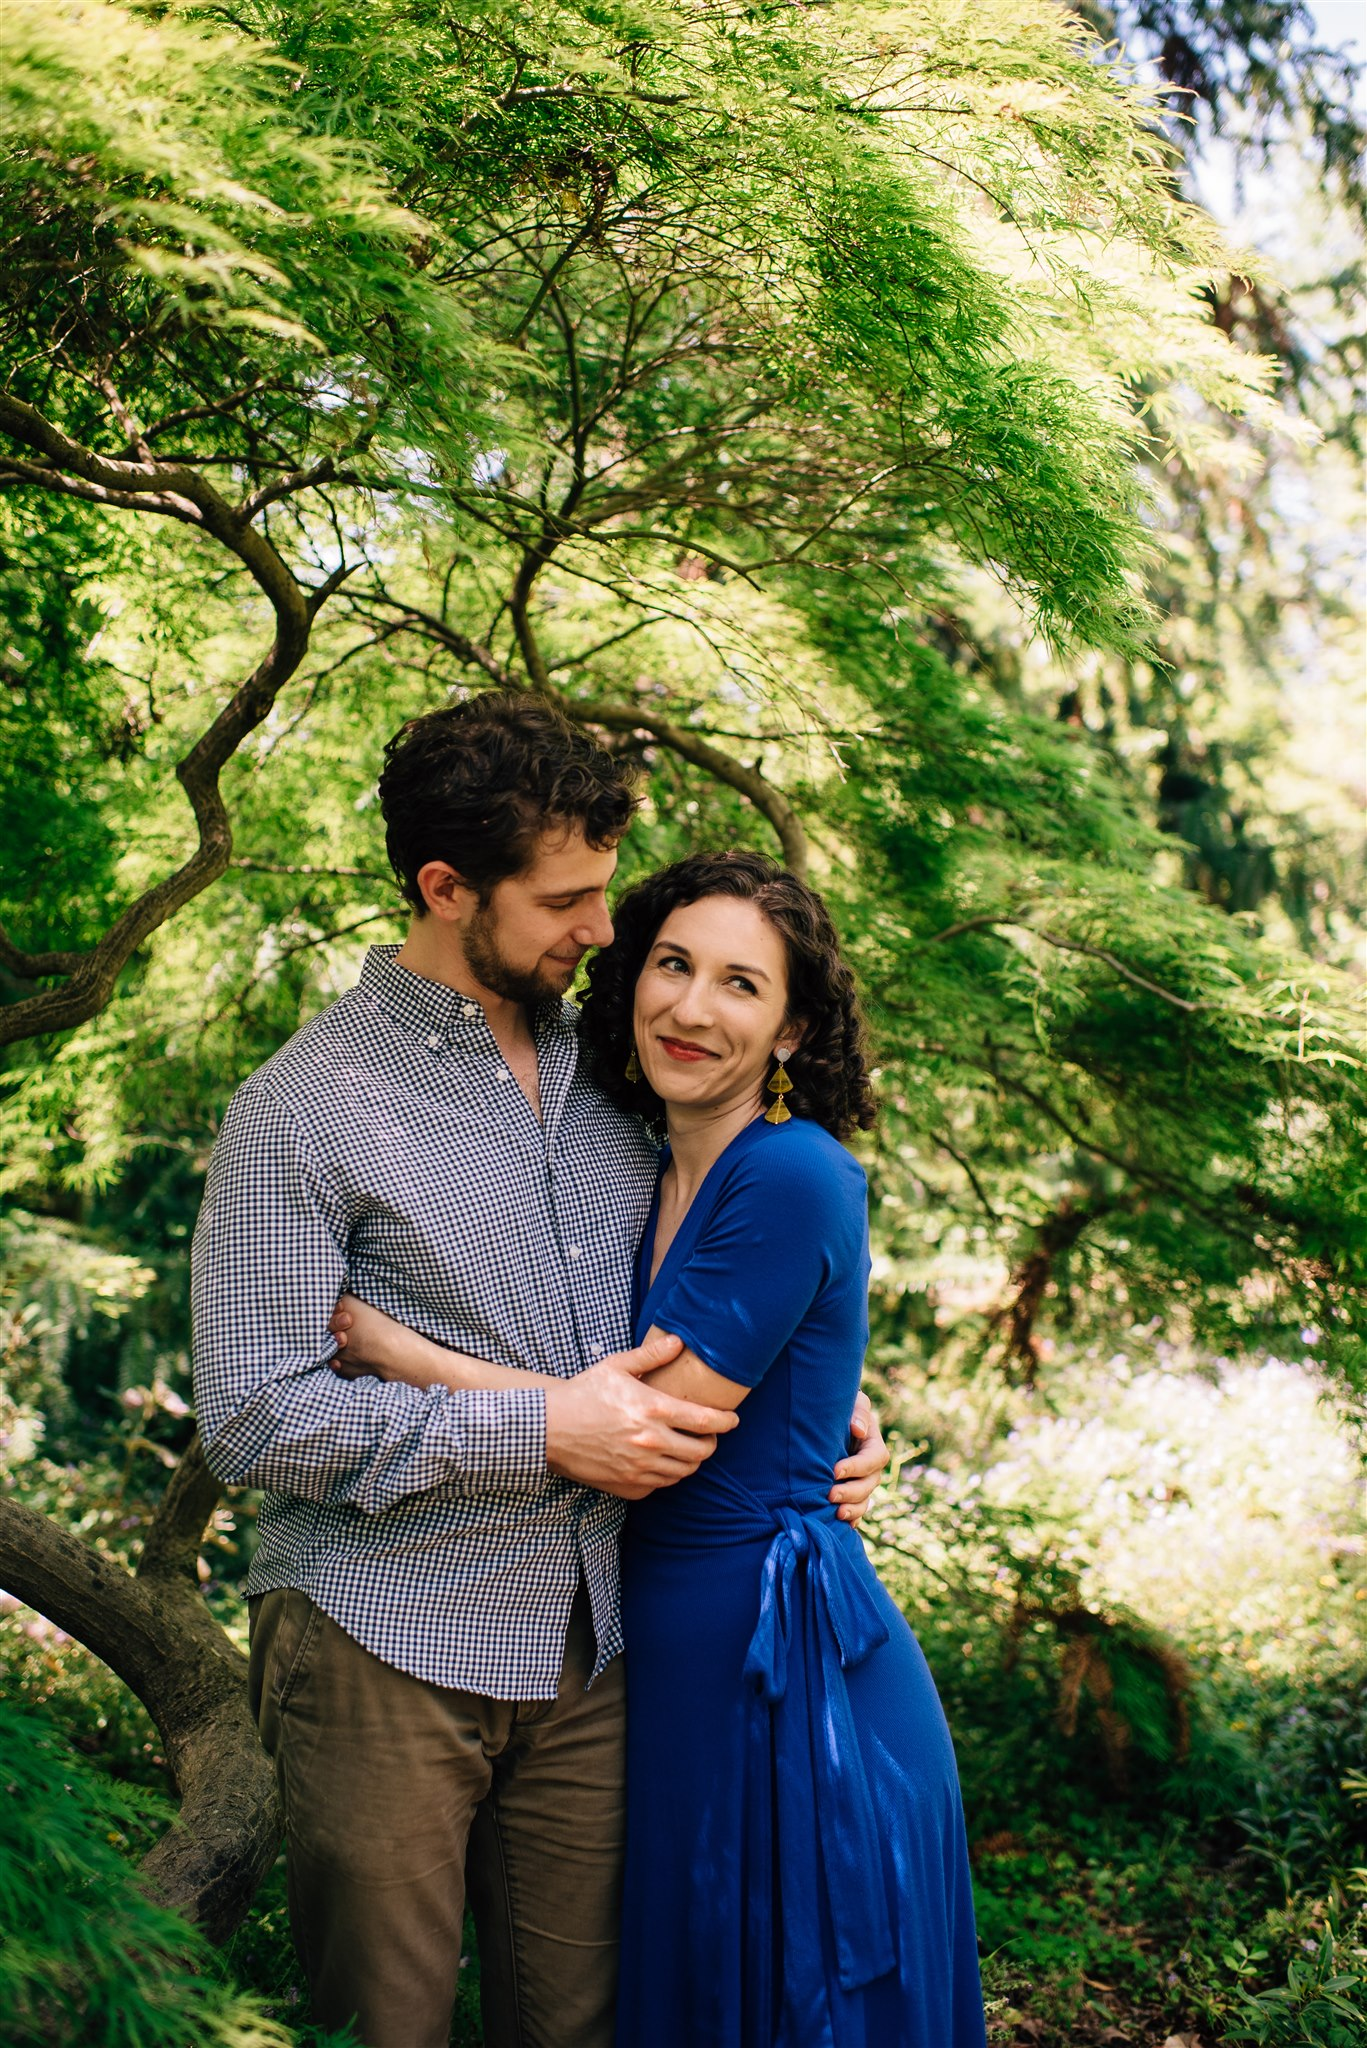 Chapel Hill Engagement Session - Chapel Hill Wedding Photographer - North Carolina Wedding Photographer - UNC Chapel Hill Engagement - Coker Arboretum Engagement Session - Linda's Bar Engagement Session